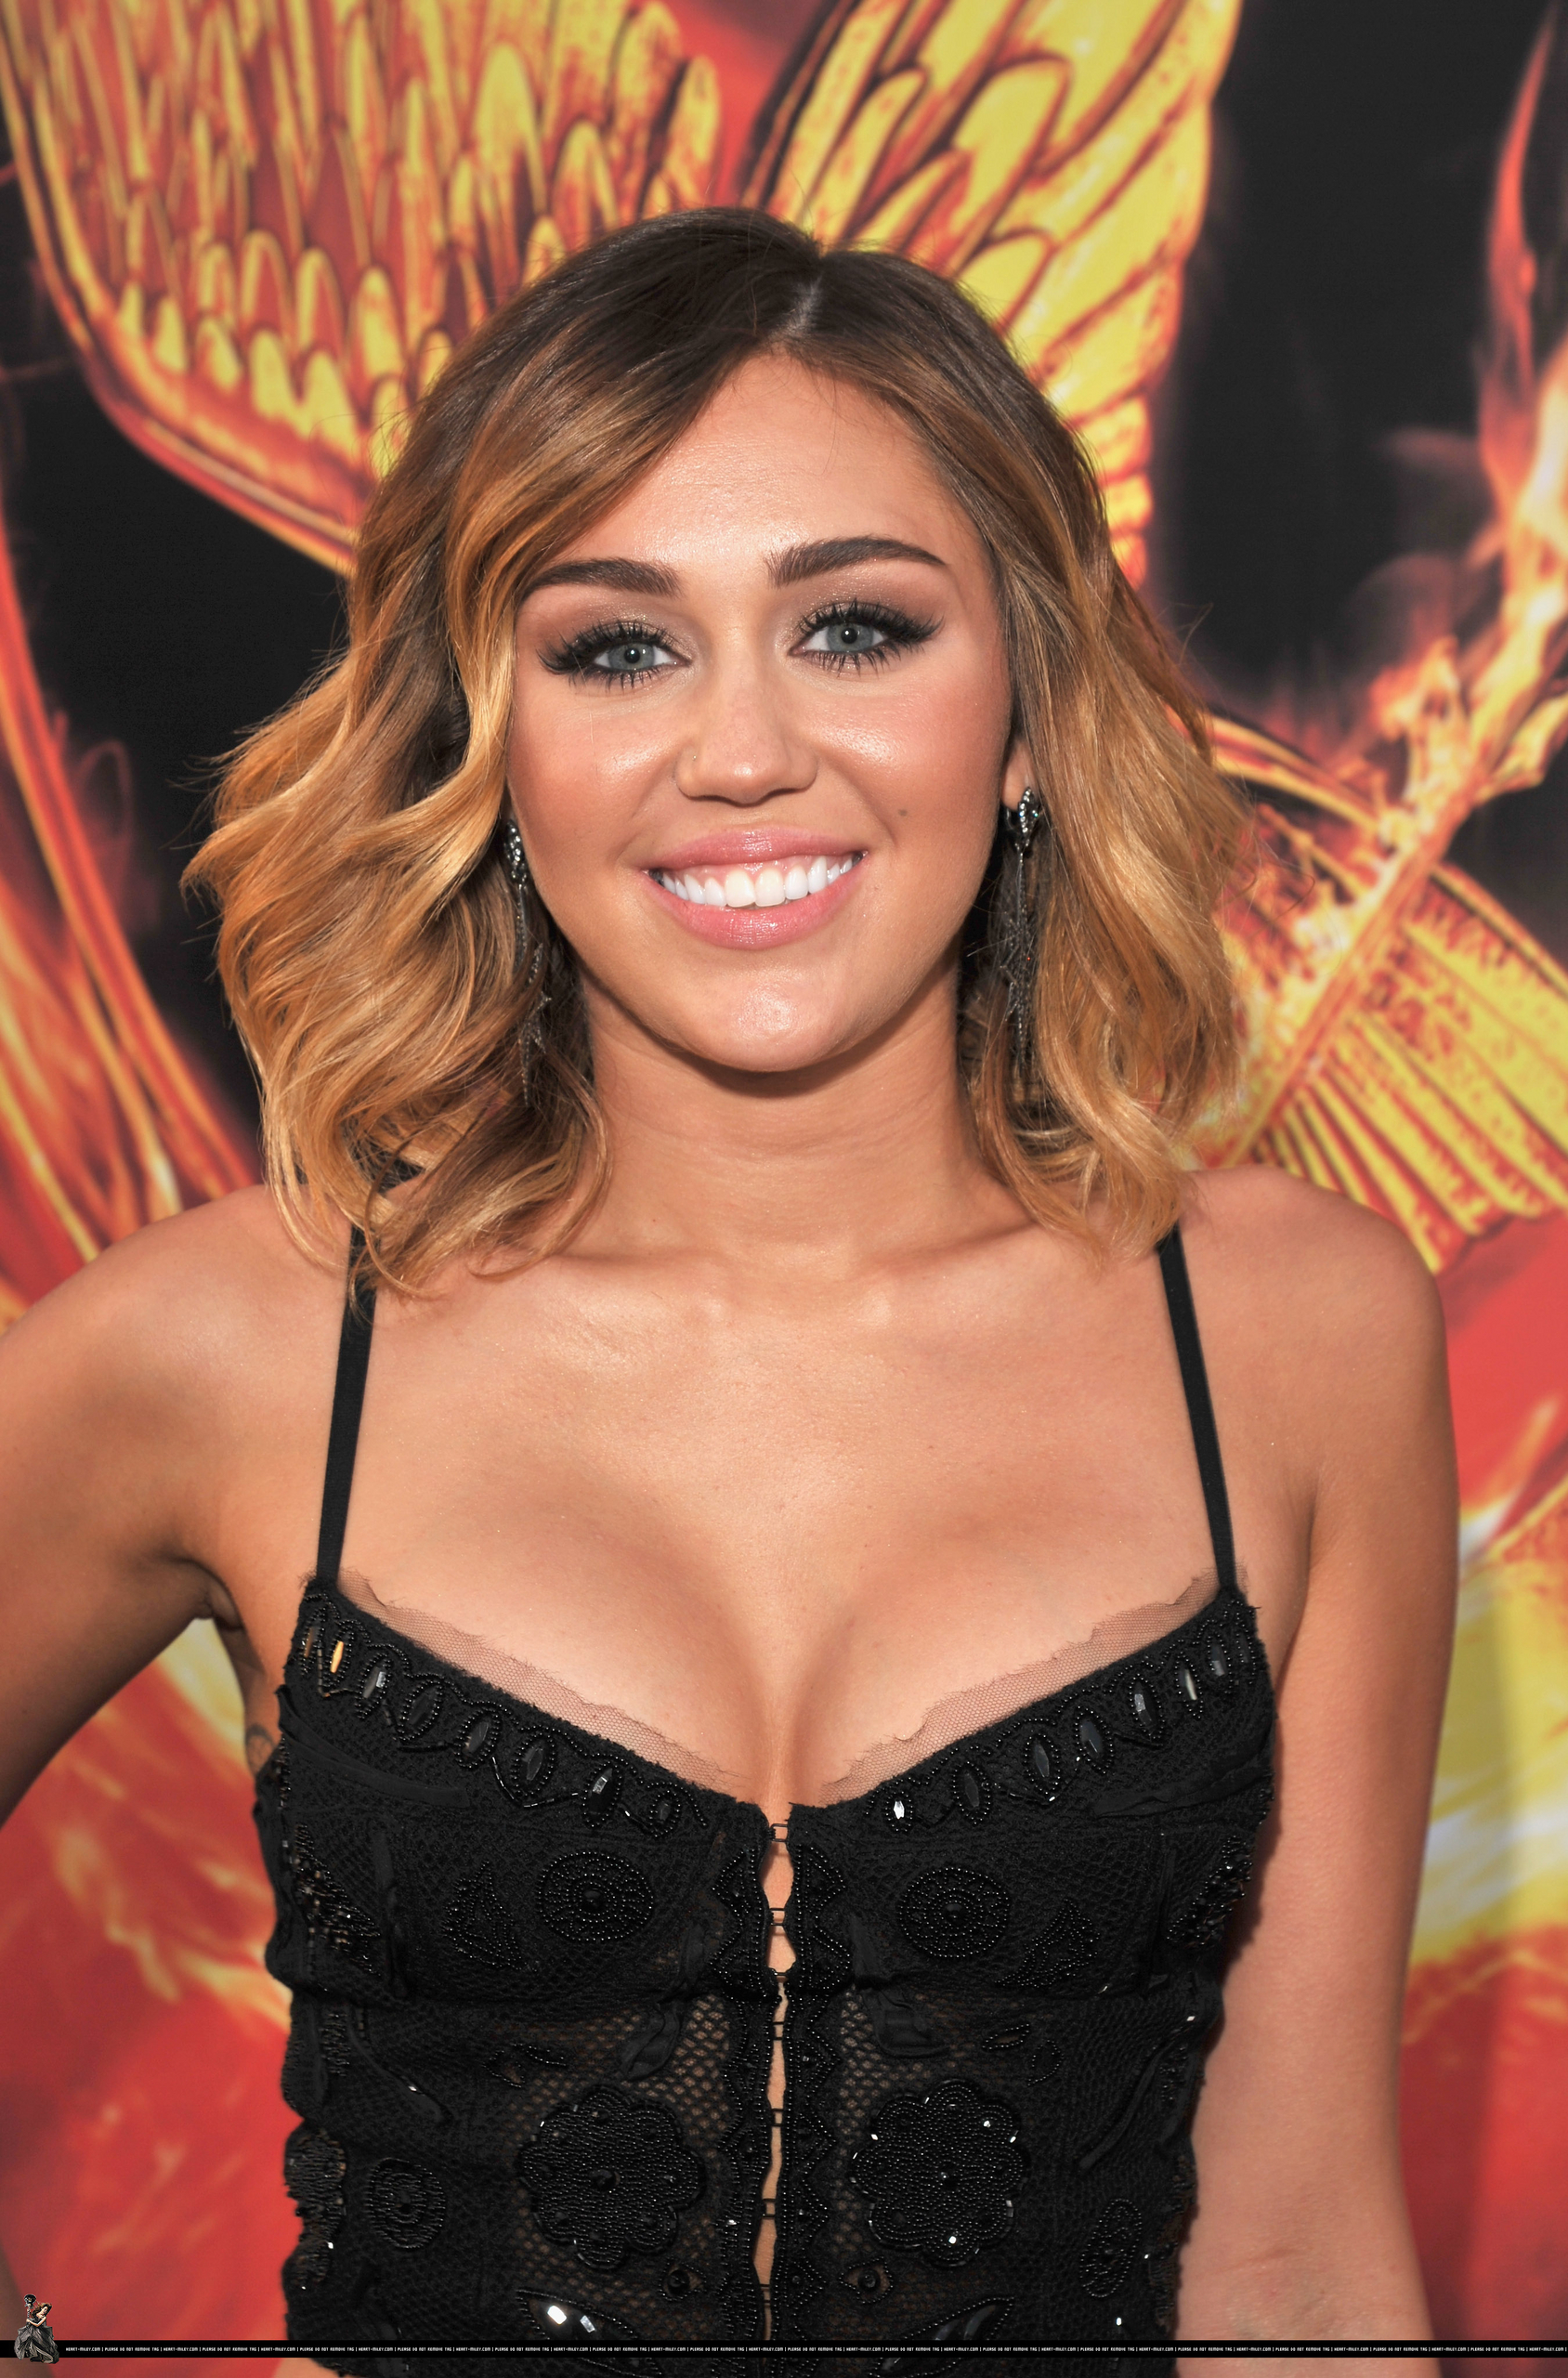 Miley Cyrus Images  E2 96 Bbmiley Hq Pics 2012 The Hunger Games Premiere  E2 97 85 Hd Wallpaper And Background Photos